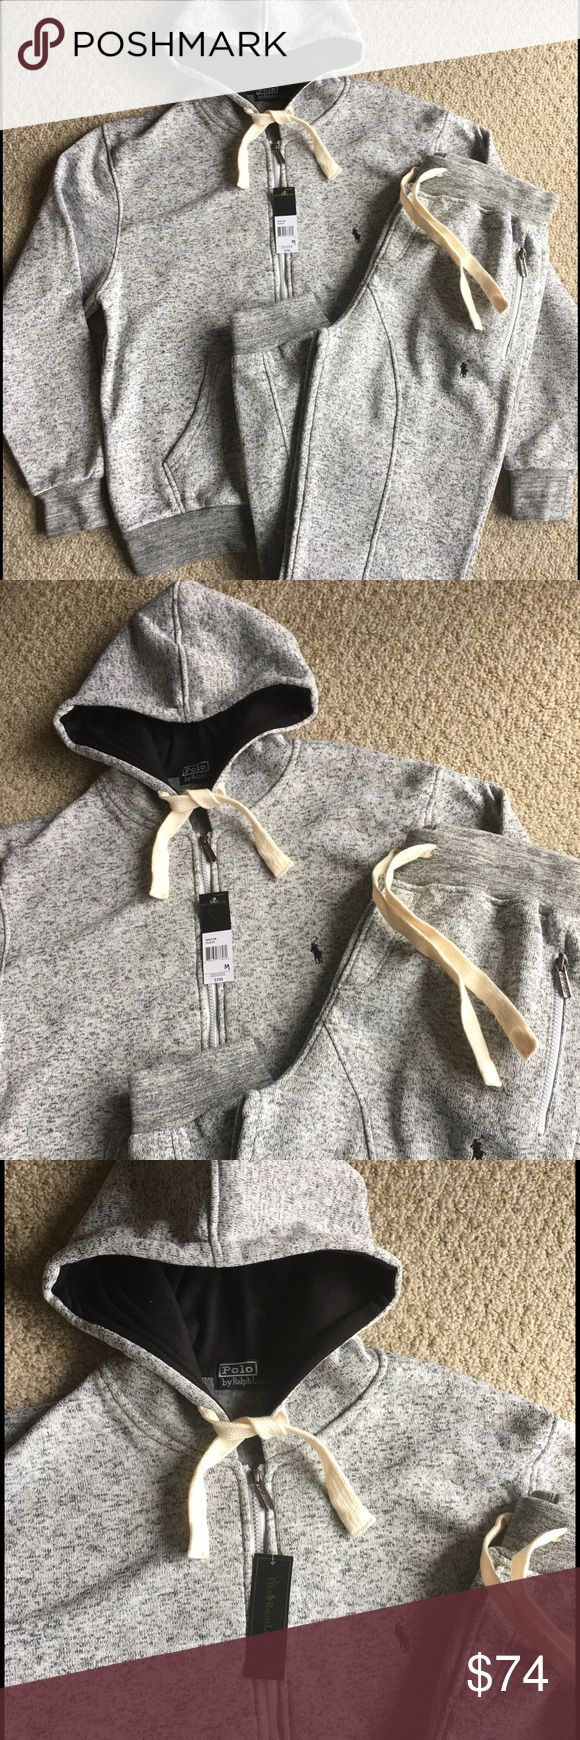 New Men's Ralph Lauren Polo Hoodie Sweatpants Set Brand new with tags. Grey with Black stitch. Elastic fitted Joggers with Zipped Hoodie. Great deal! Polo by Ralph Lauren Shirts Sweatshirts & Hoodies